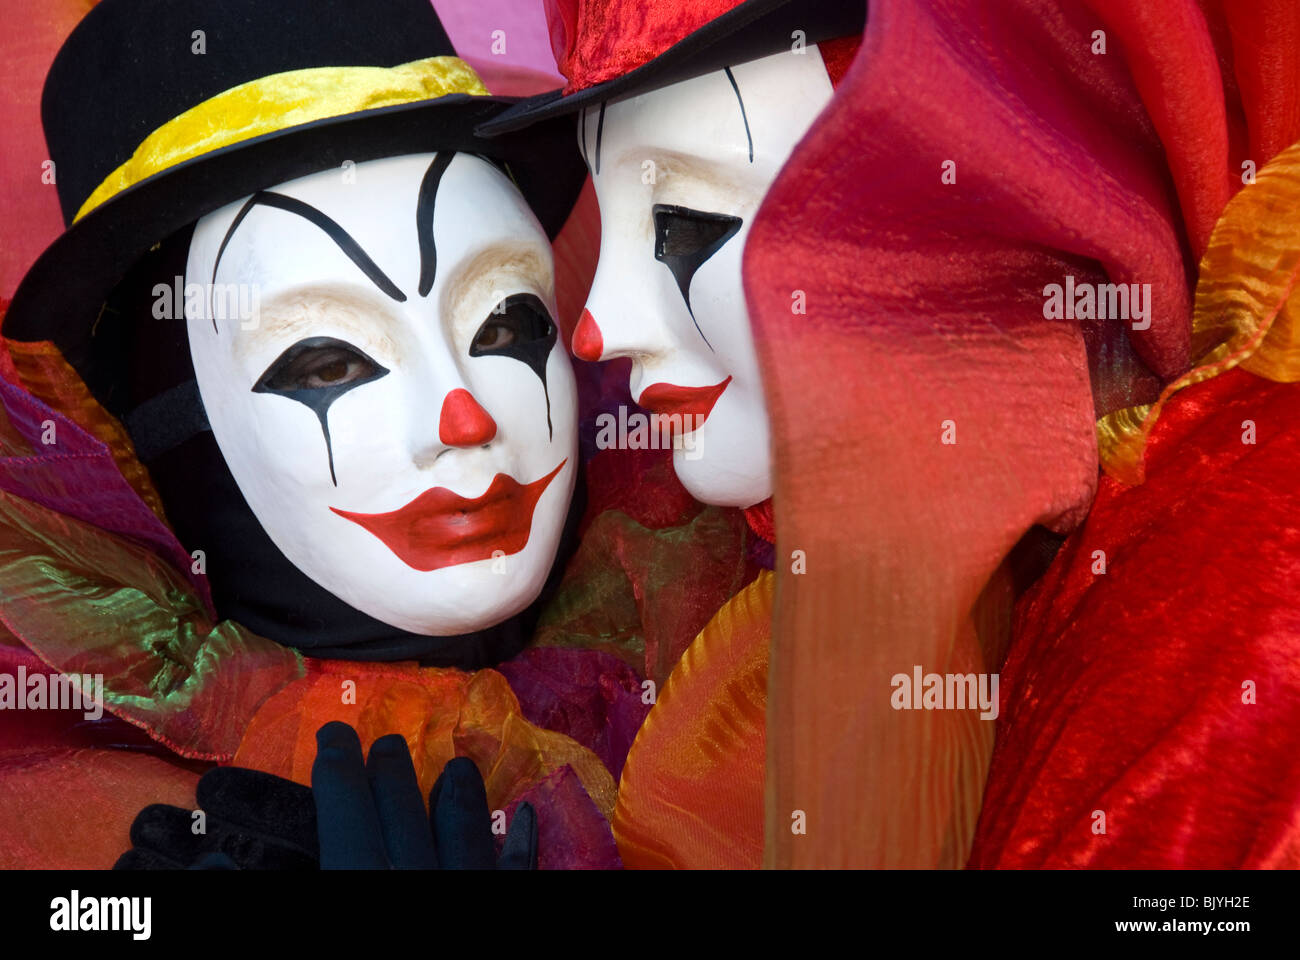 Venice, Italy, Carnival participants costumed as clowns - Stock Image